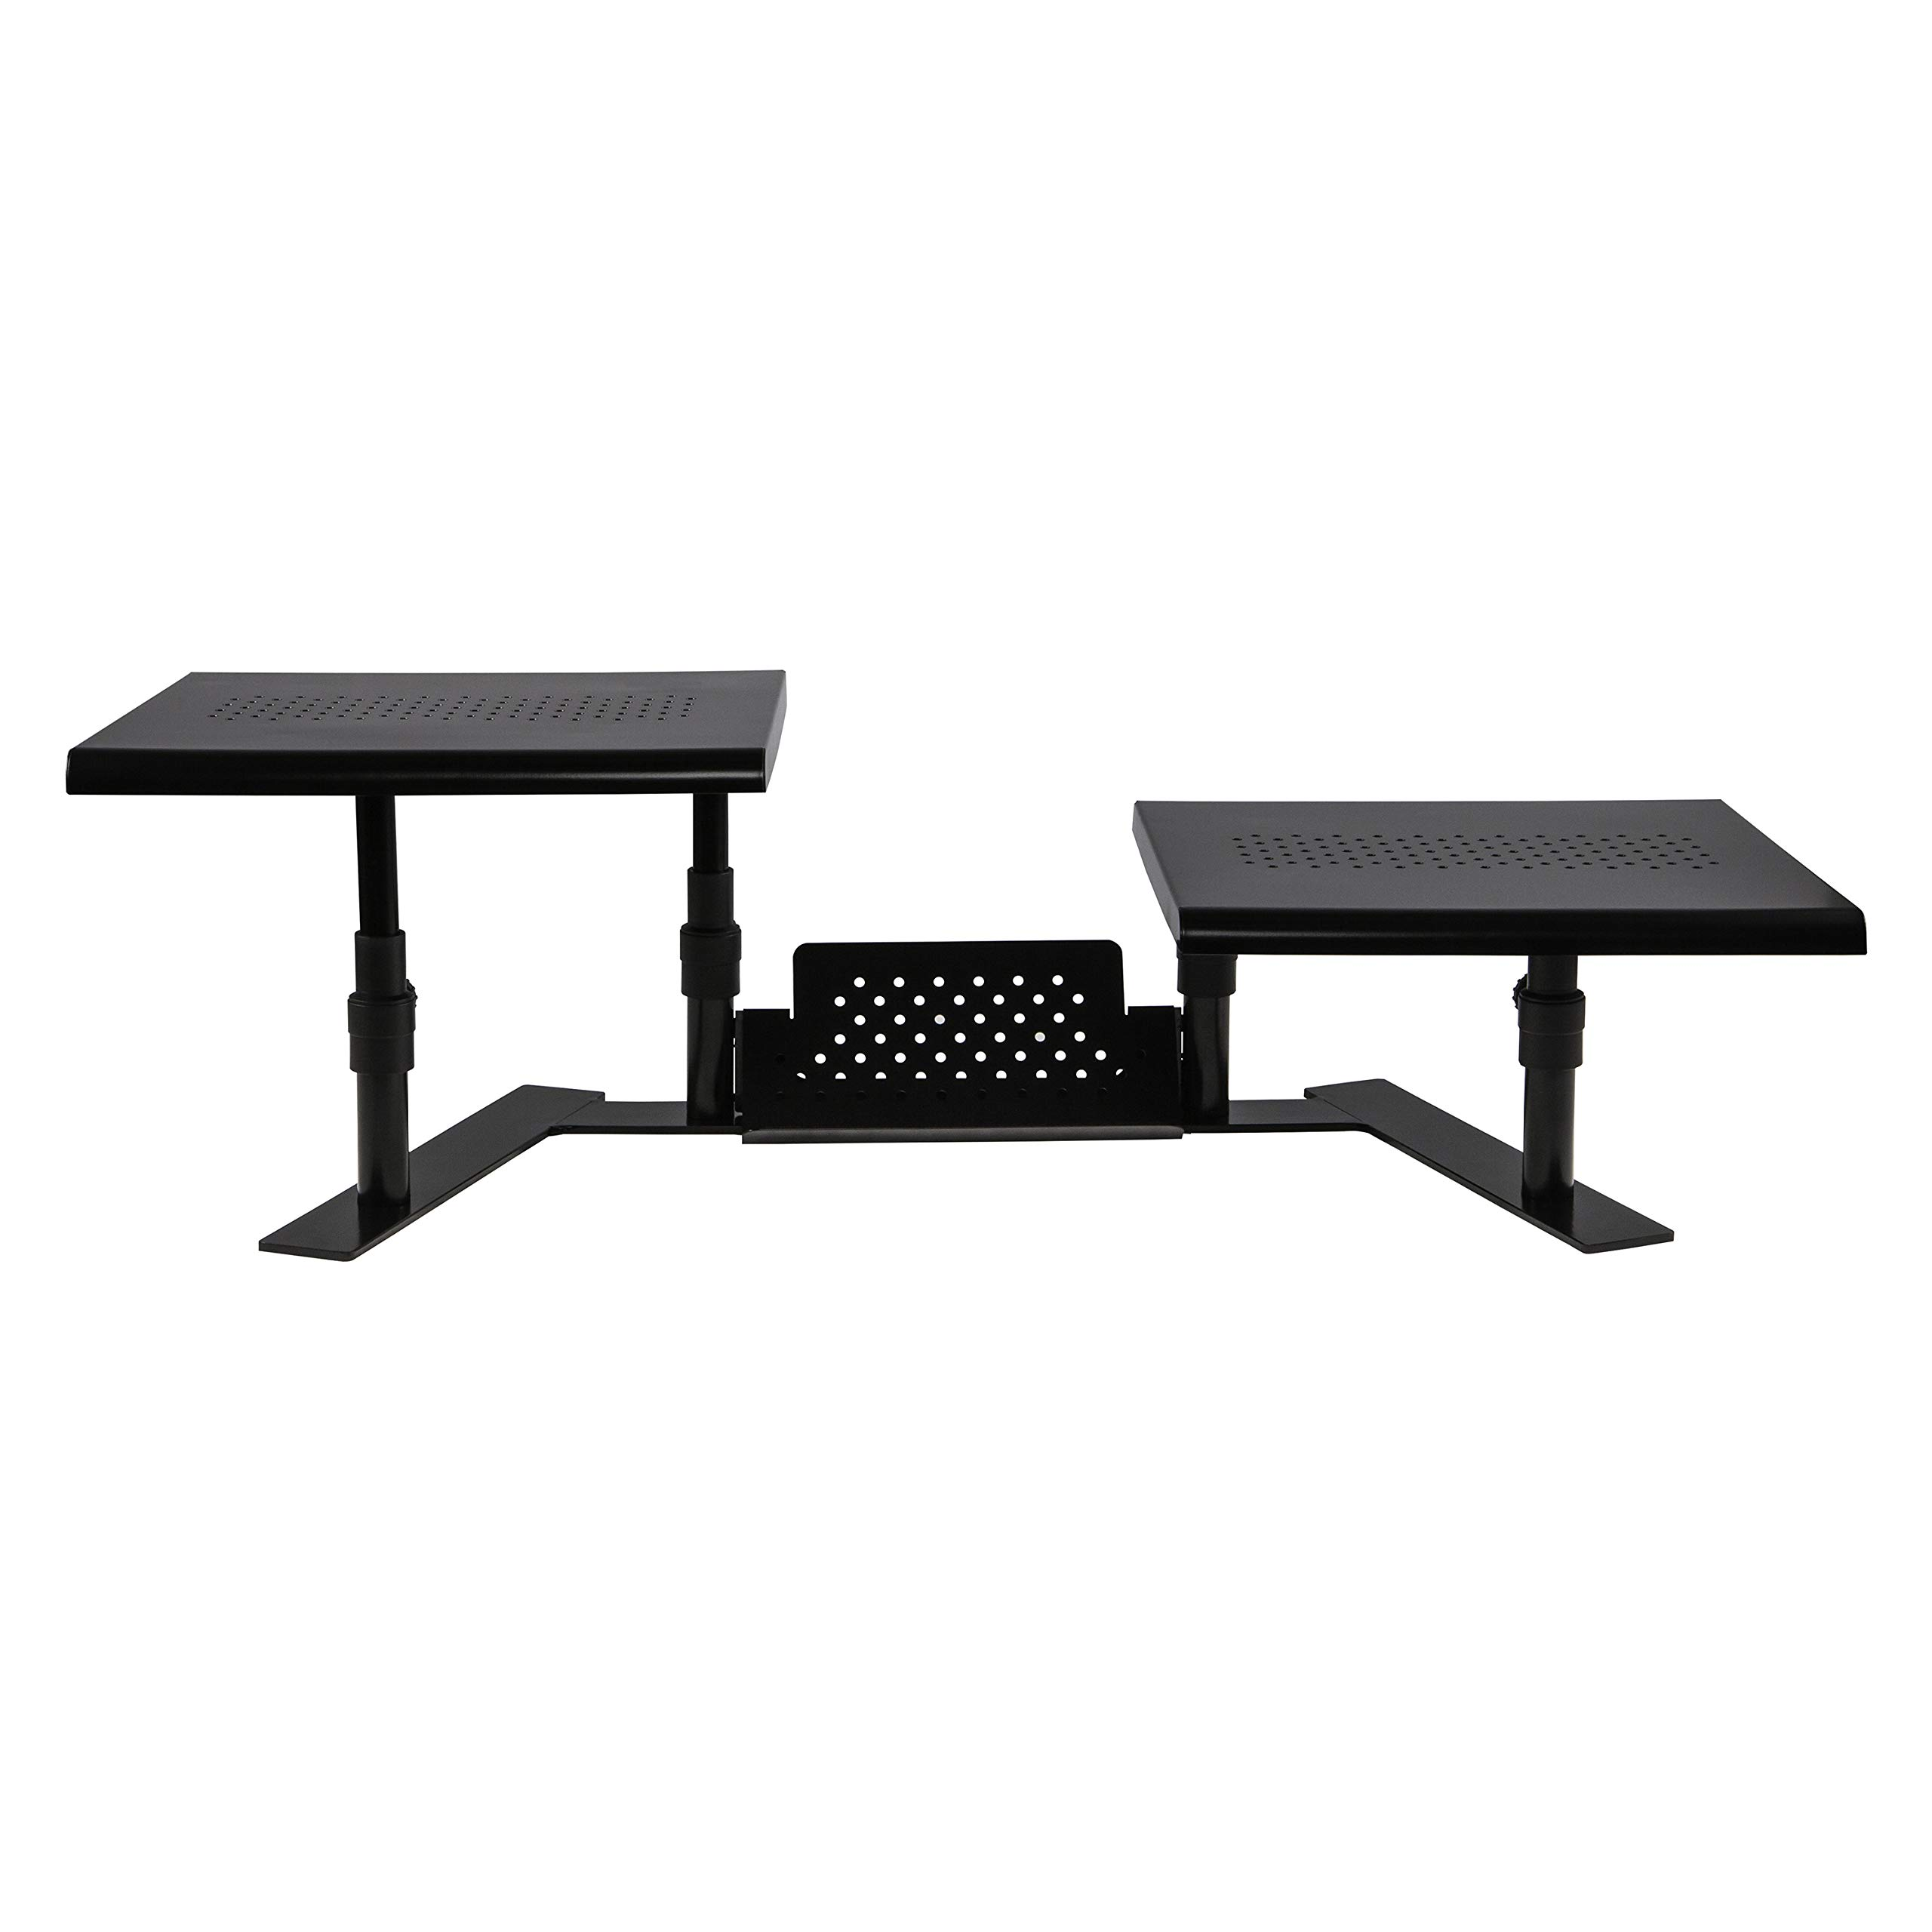 Allsop Metal Art ErgoTwin Height Adjustable Dual Monitor Stand (31883) by Allsop